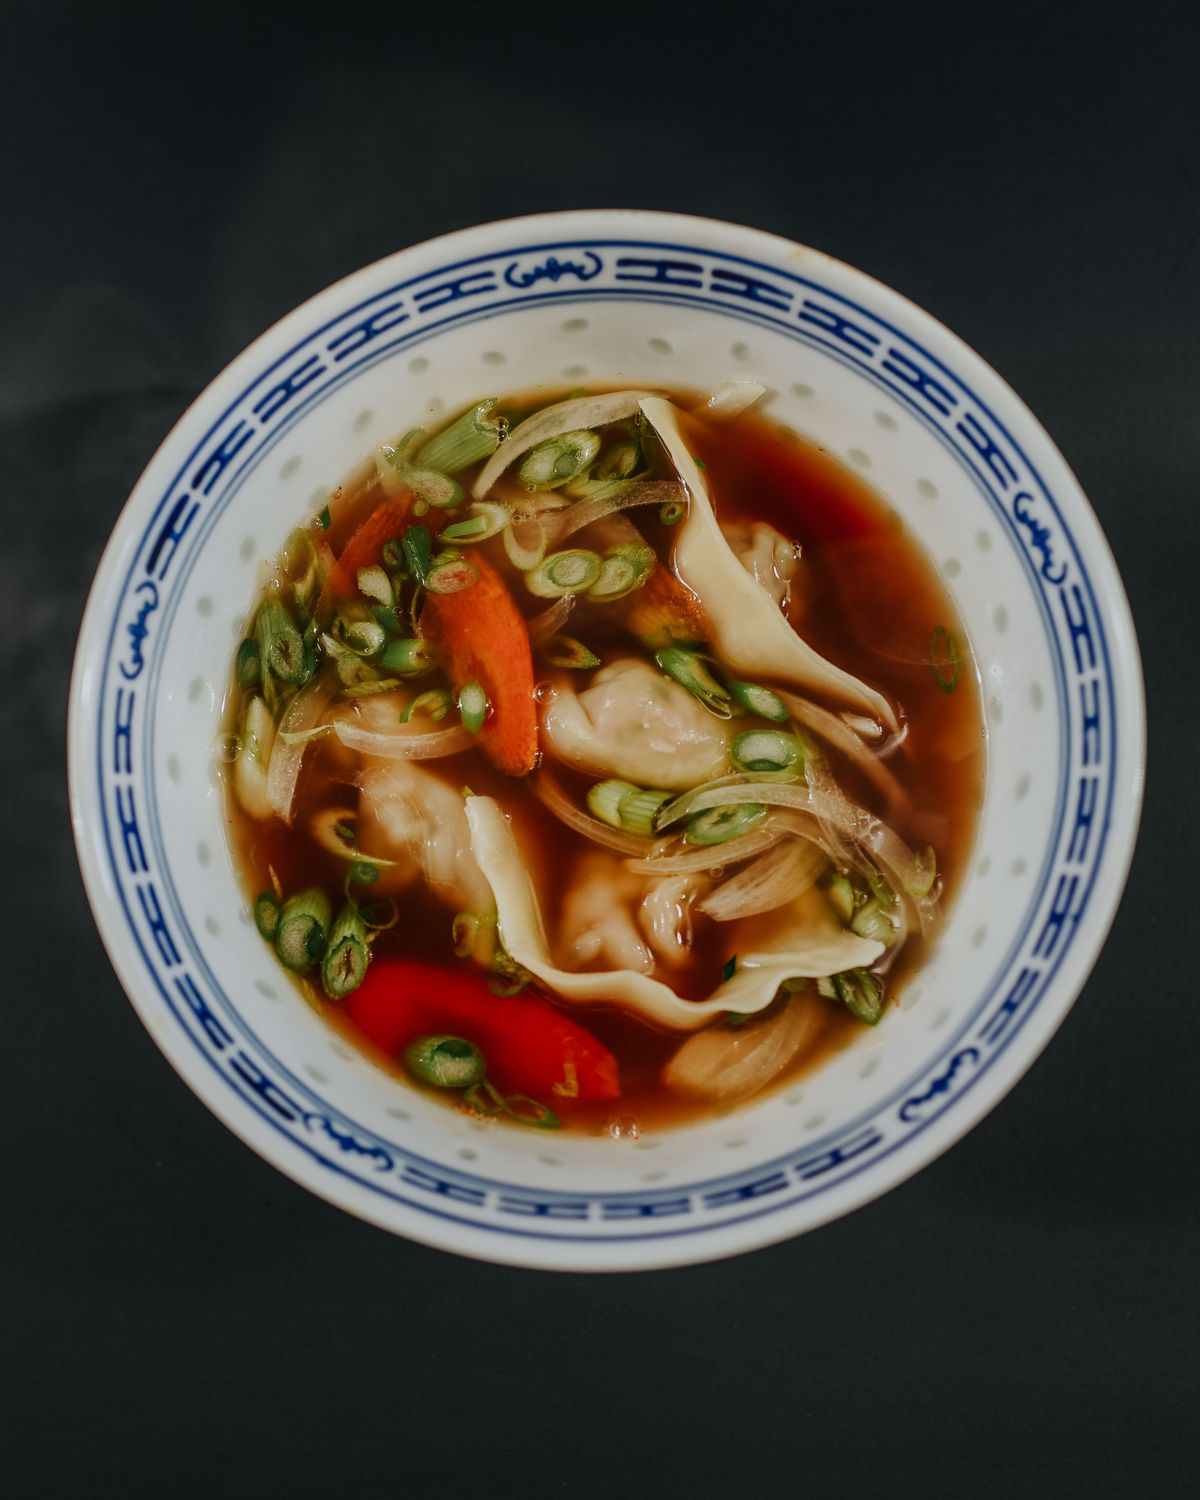 A bowl of wonton soup swimming in dark brother with scallions and carrots from Mow's Chinese Kitchen in Alpharetta GA